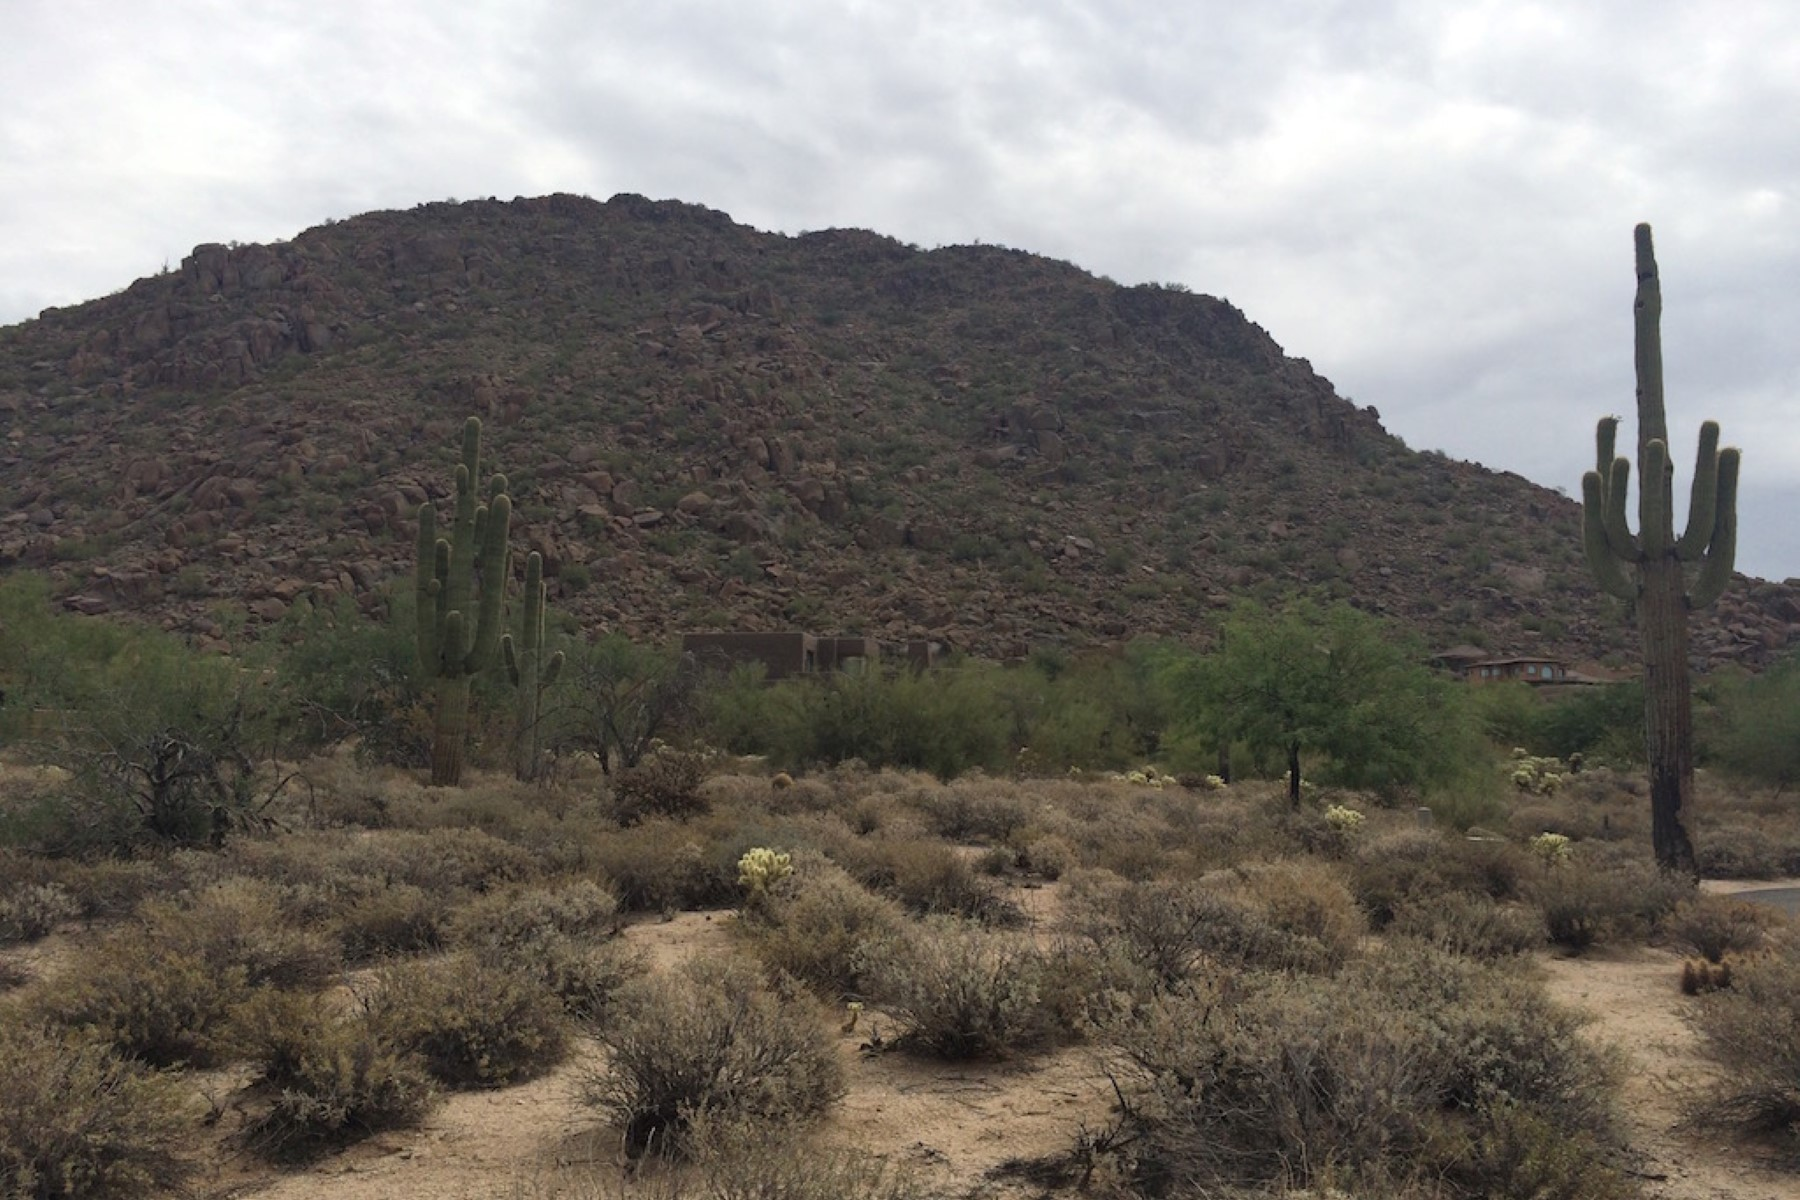 Property For Sale at Beautiful cul-de-sac lot located in the exclusive community of Desert Highlands.